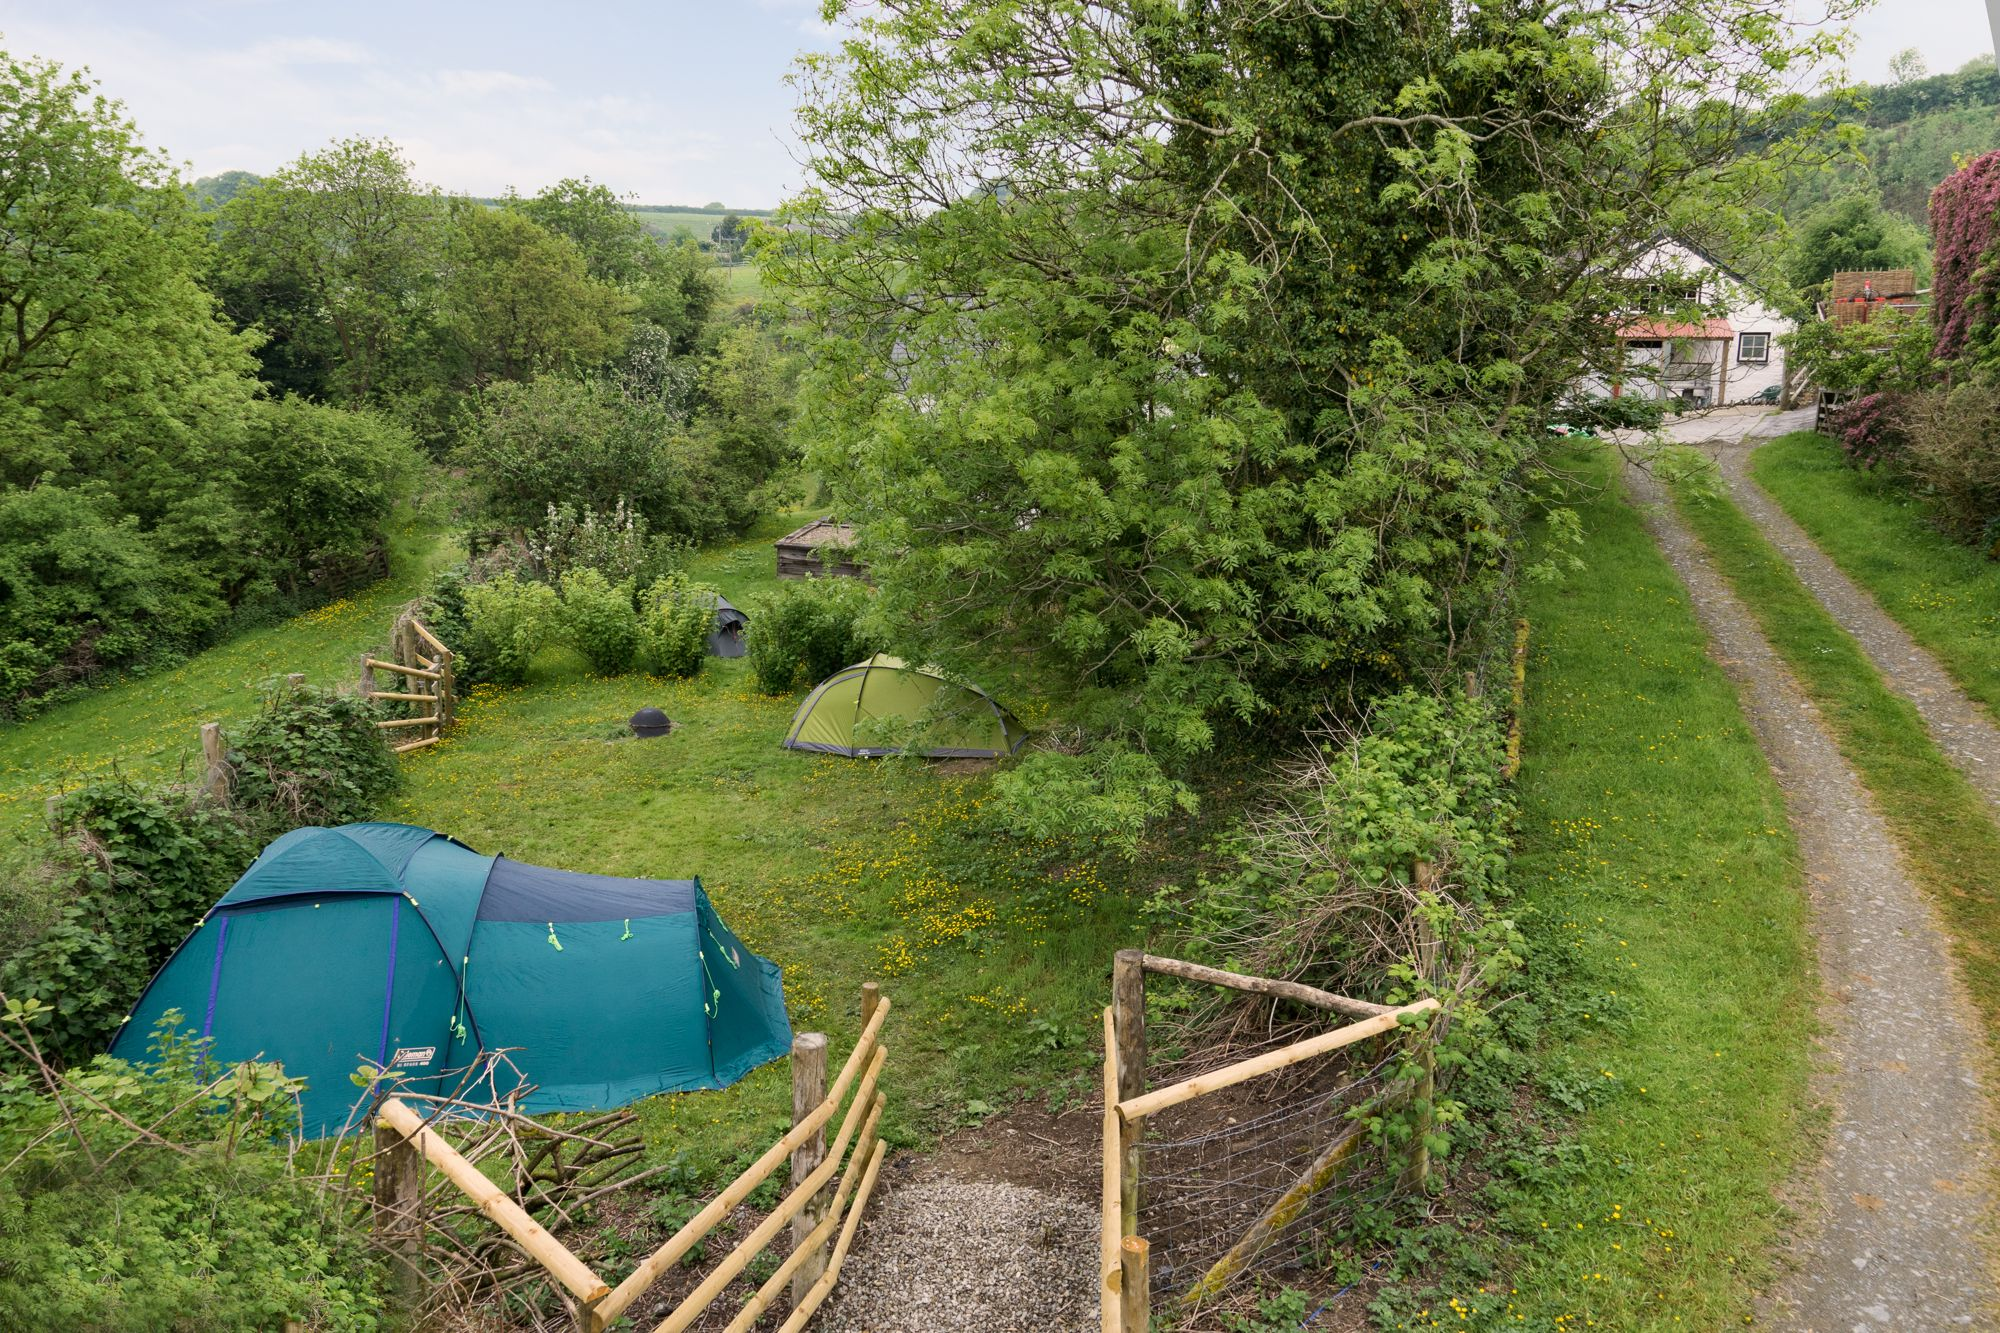 Campsites in Coed-y-Bryn – Cool Camping